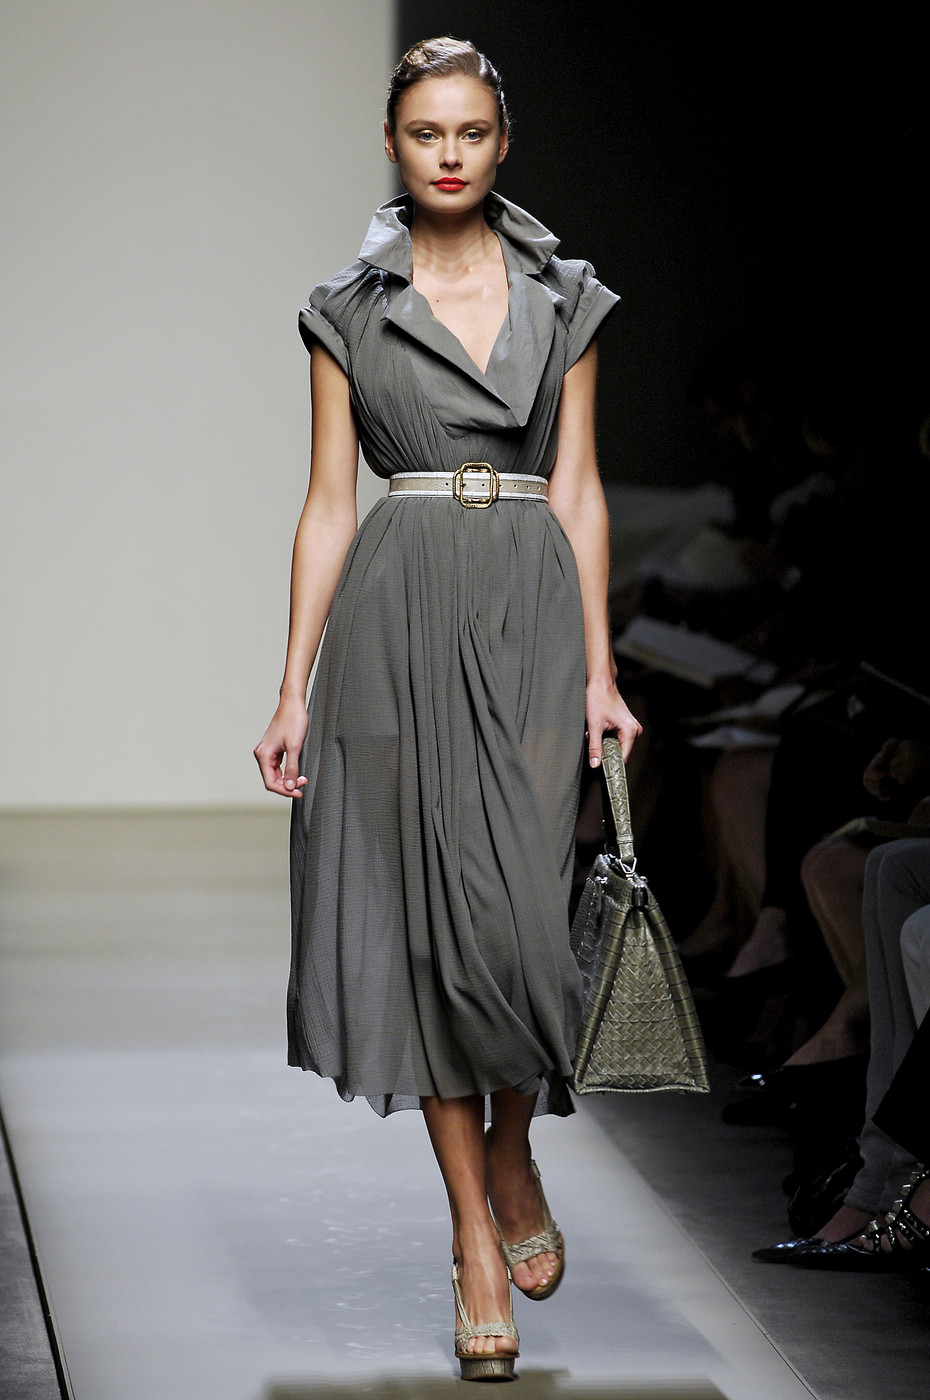 via fashioned by love | bottega veneta spring/summer 2008